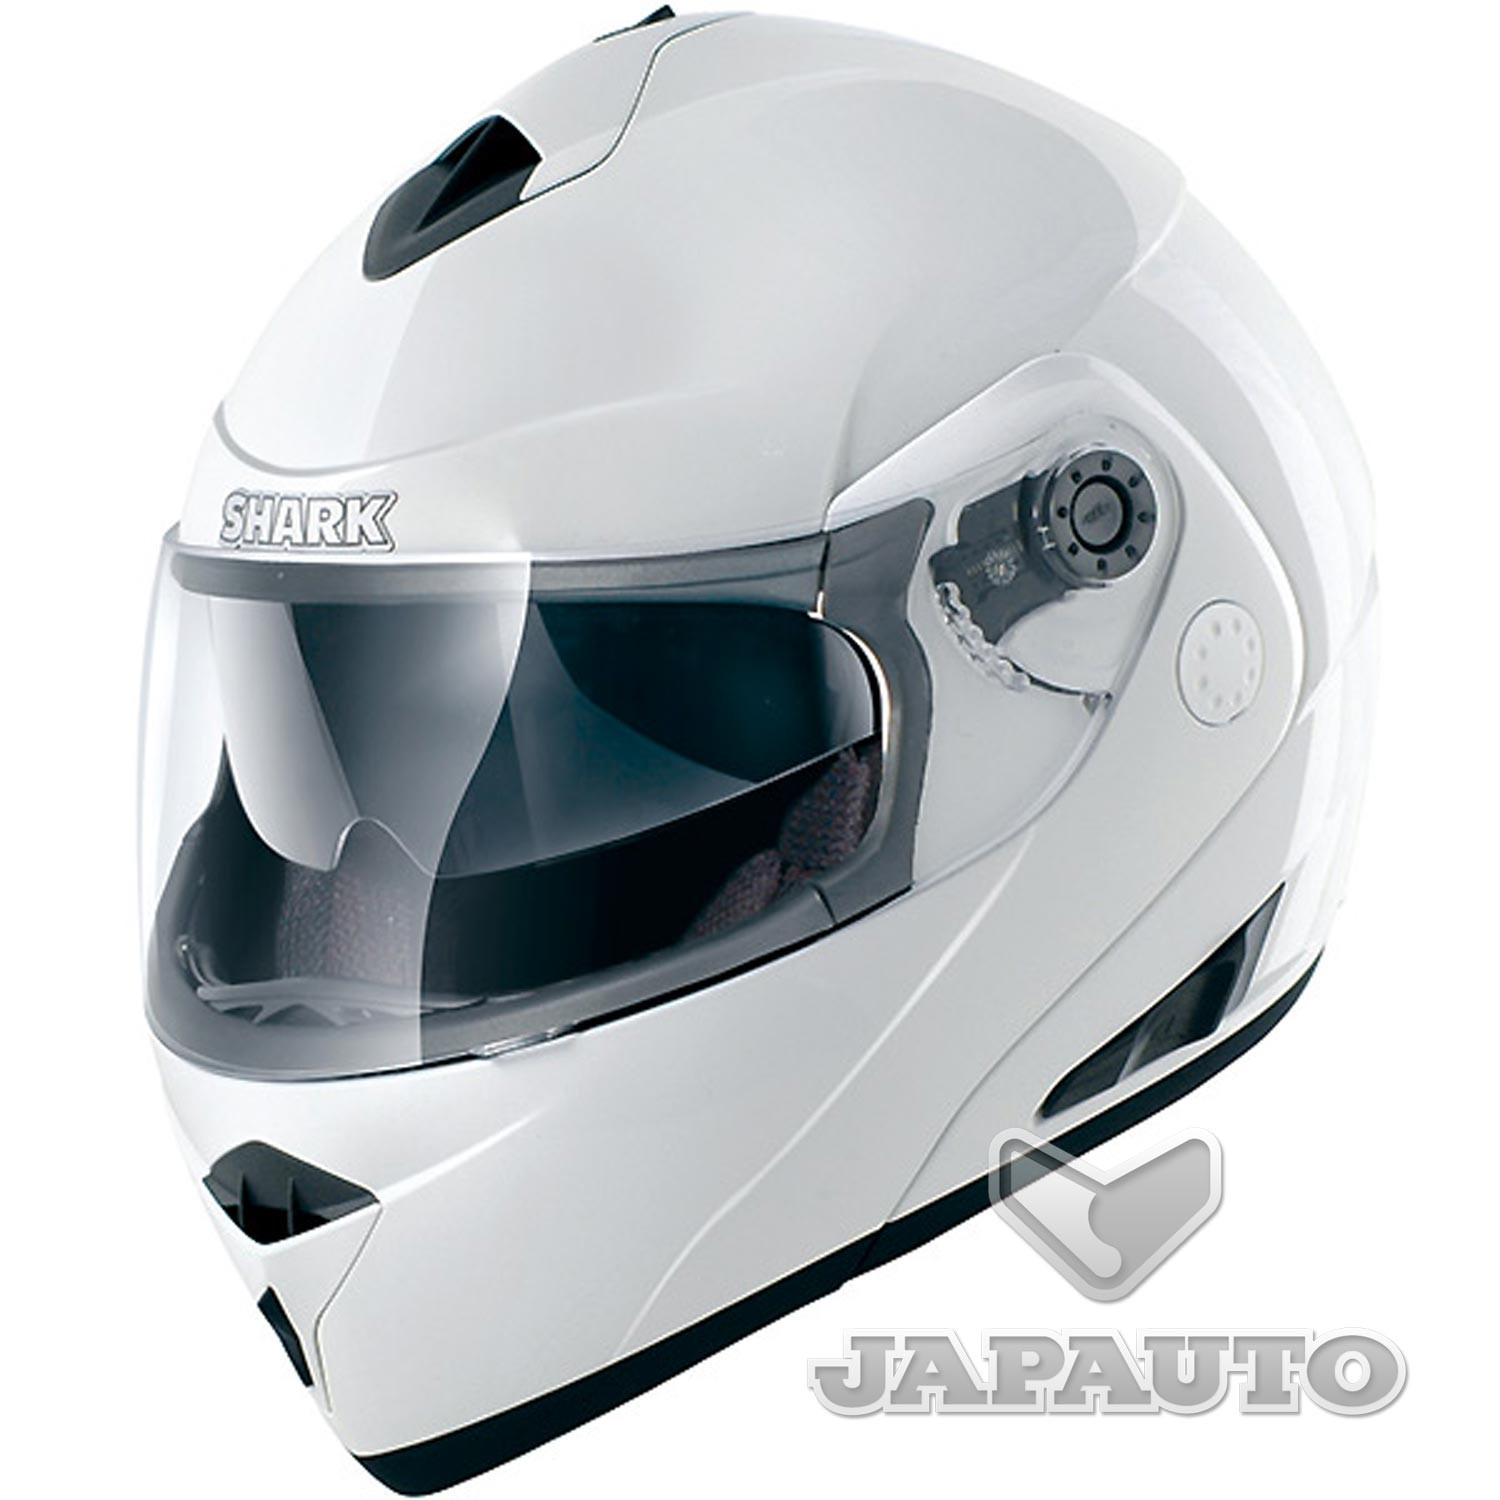 casque shark openline blanc casque modulable moto scooter japauto accessoires. Black Bedroom Furniture Sets. Home Design Ideas